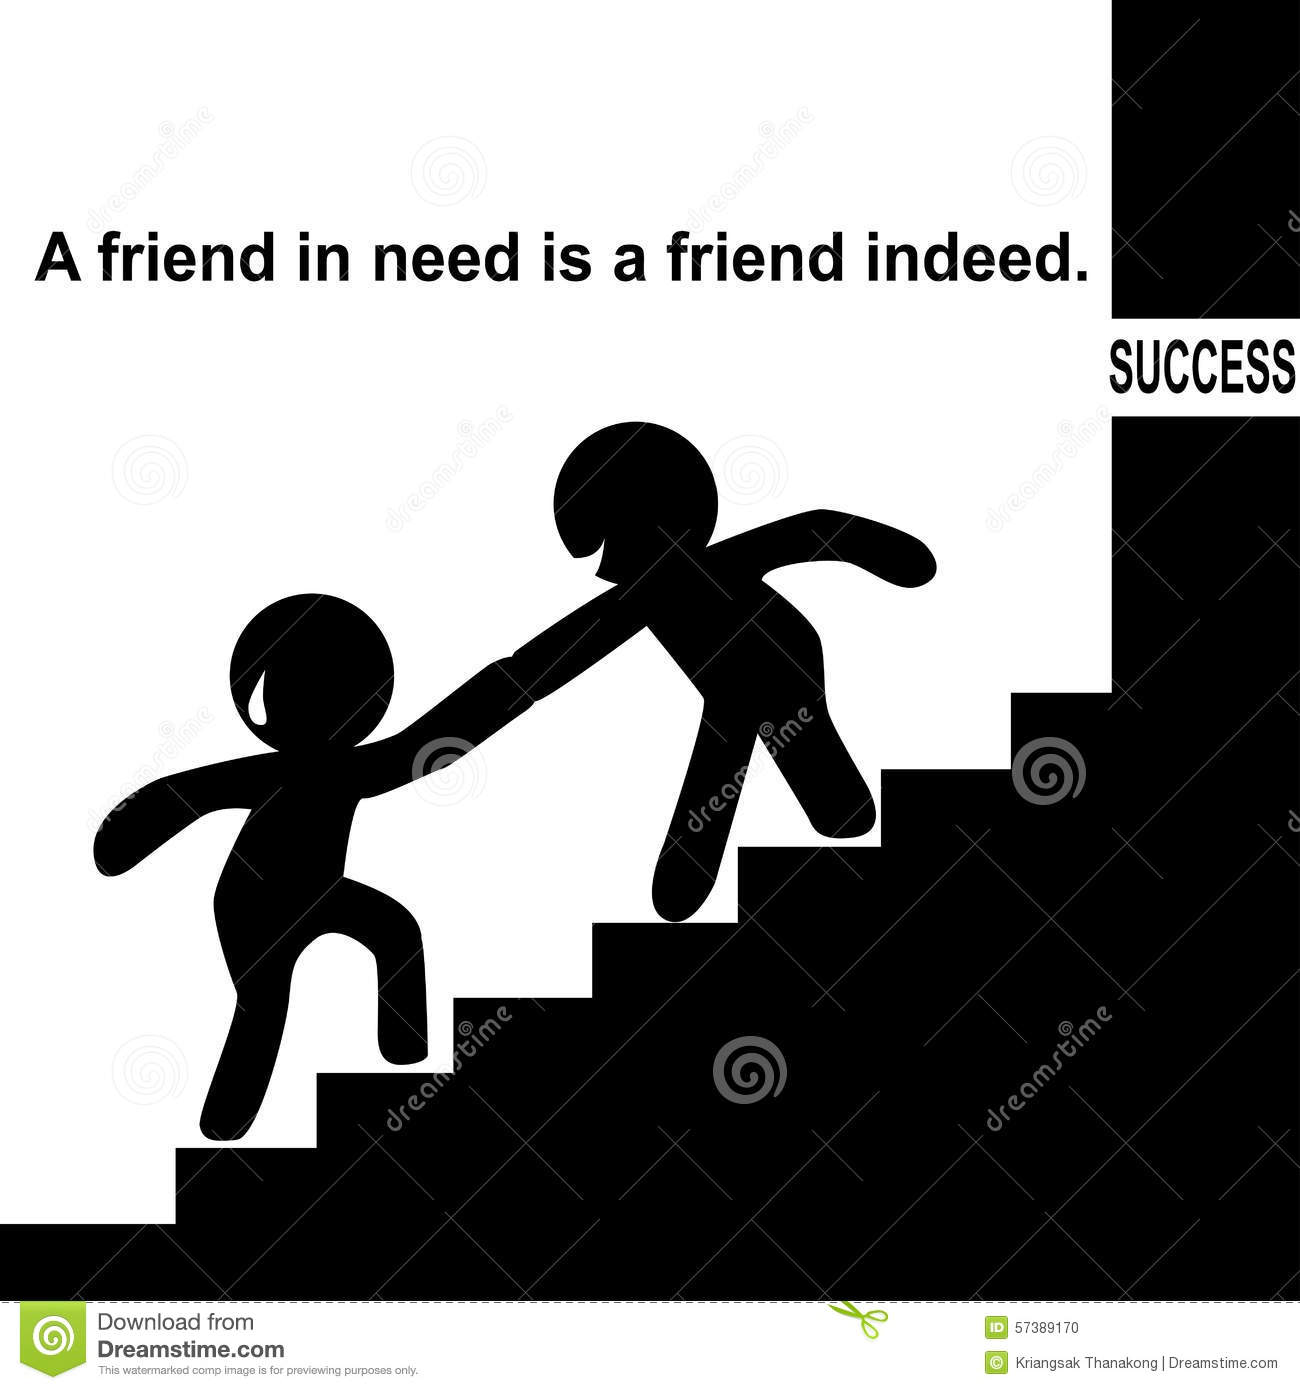 essay on a proverb a friend in need is a friend in deed I want a simple story of the proverb ''a friend in need is a friend indeed'' pls reply immediately i want it for my exam which is after 1 day it must and also said that a friend in need, is really a friend in deed.